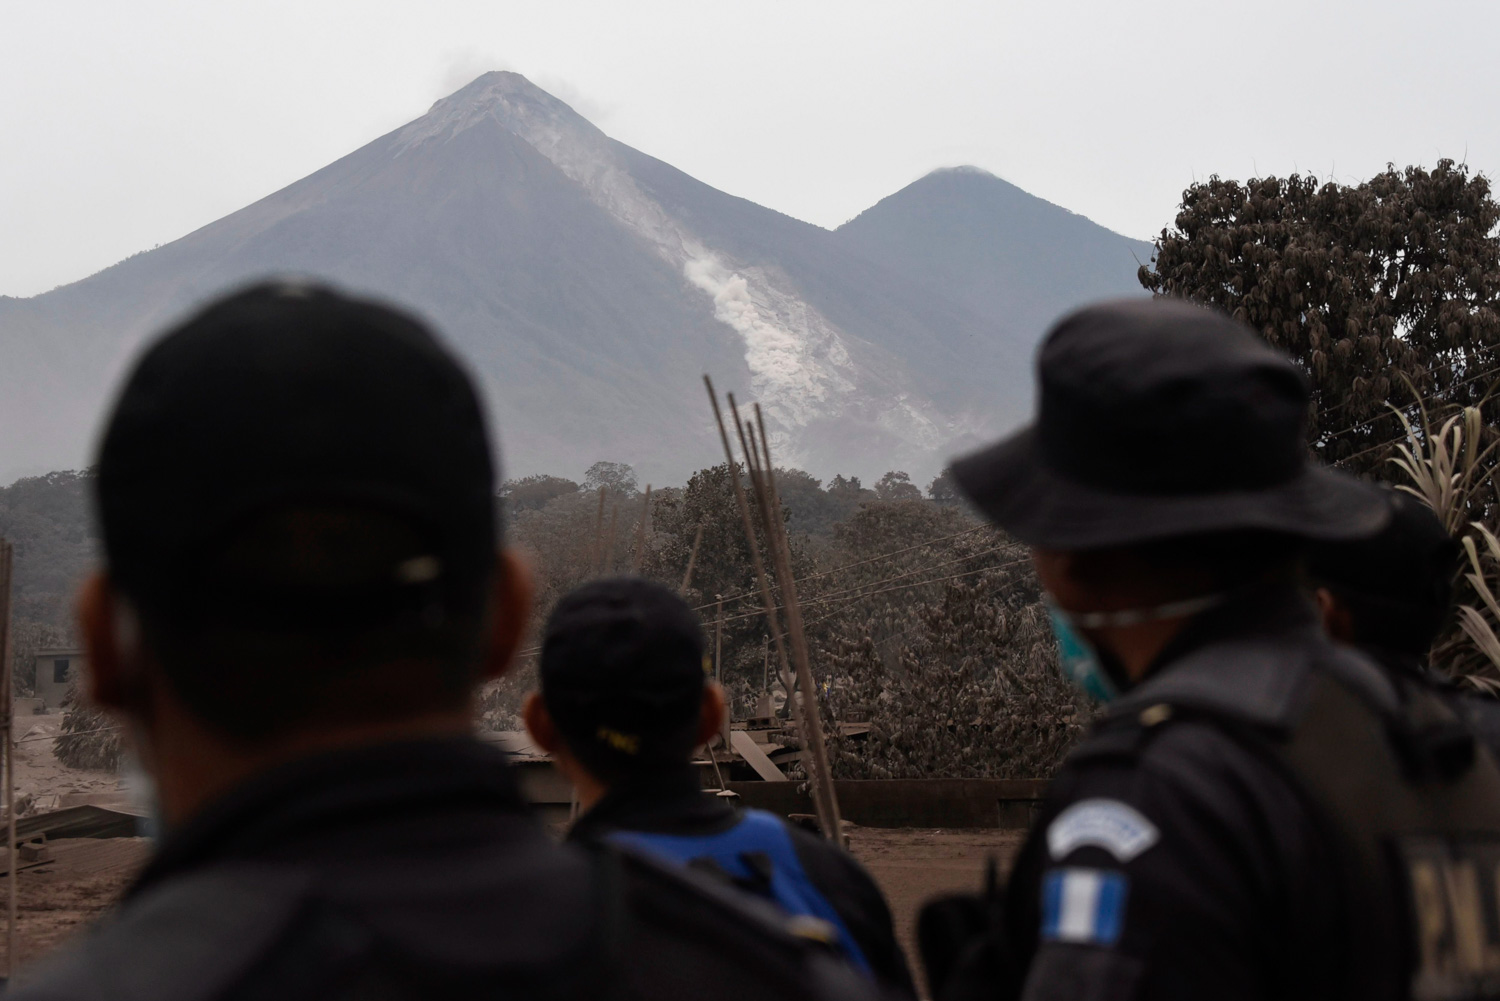 "<div class=""meta image-caption""><div class=""origin-logo origin-image none""><span>none</span></div><span class=""caption-text"">Police officers look at the Fuego Volcano from San Miguel Los Lotes, a village in Escuintla Department, about 35 km southwest of Guatemala City, on June 4, a day after an eruption. (JOHAN ORDONEZ/AFP/Getty Images)</span></div>"